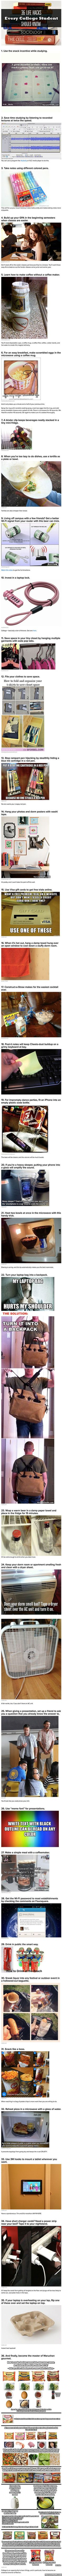 36 Life Hacks Every College Student Should Know Pictures, Photos, and Images for Facebook, Tumblr, Pinterest, and Twitter